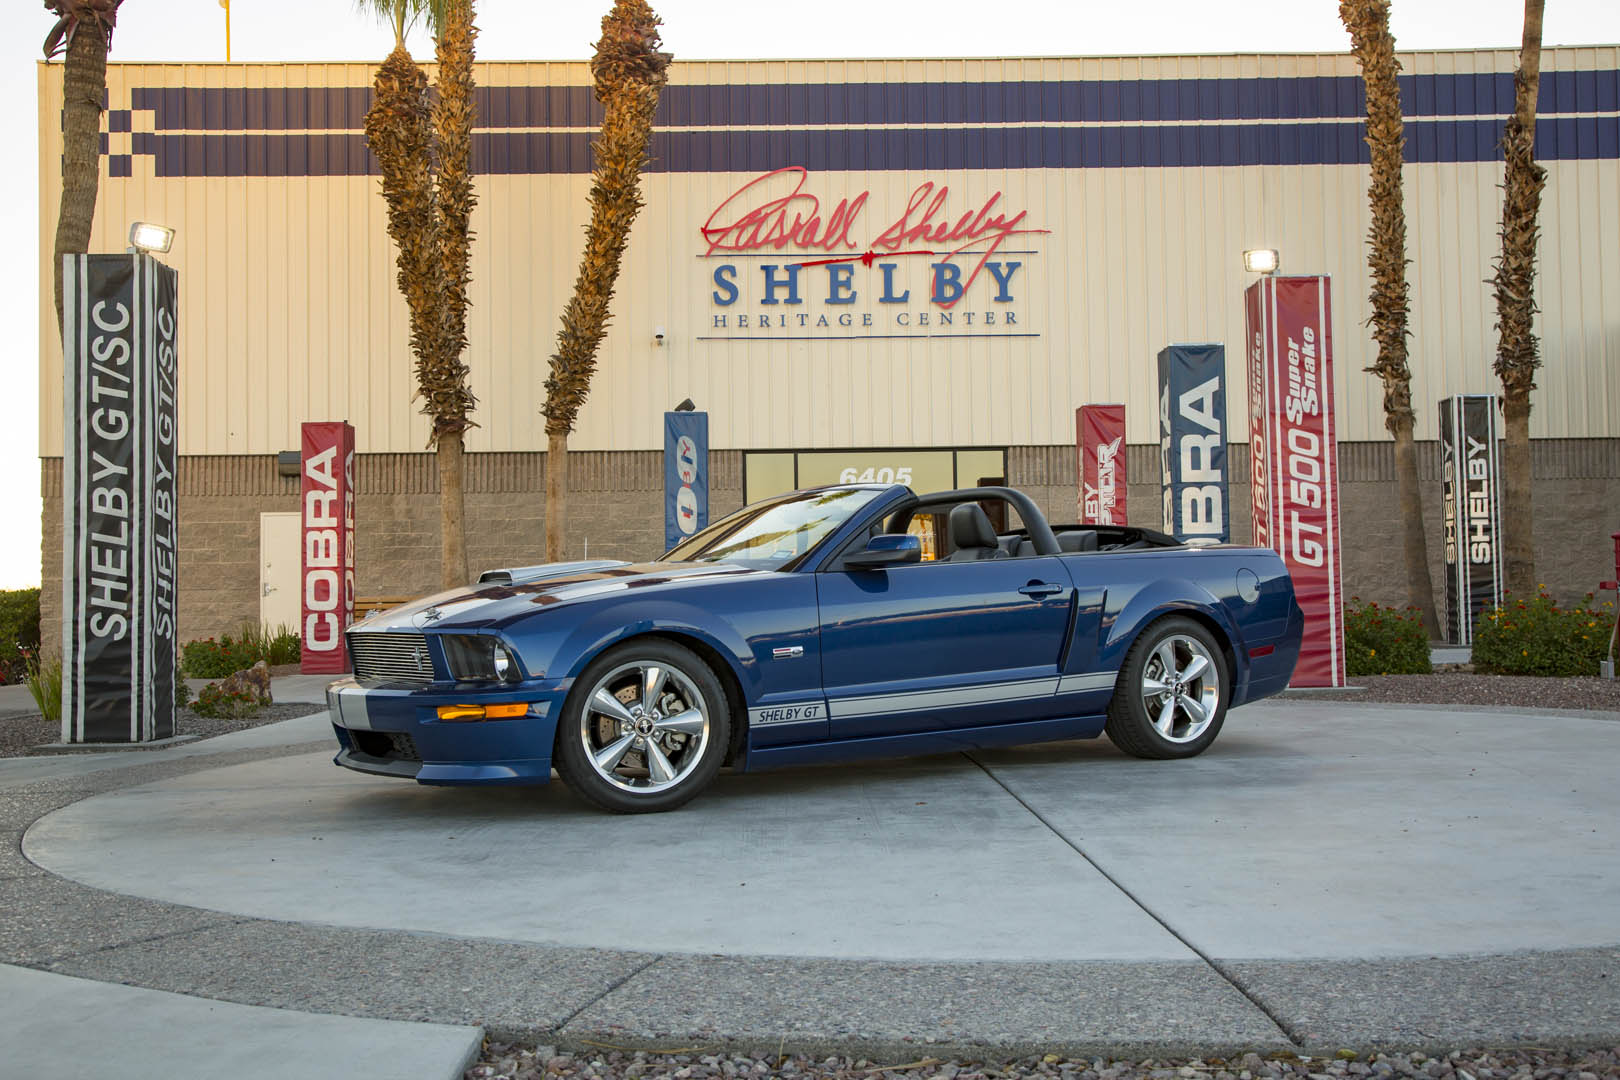 2007 Shelby GT convertible prototype profile